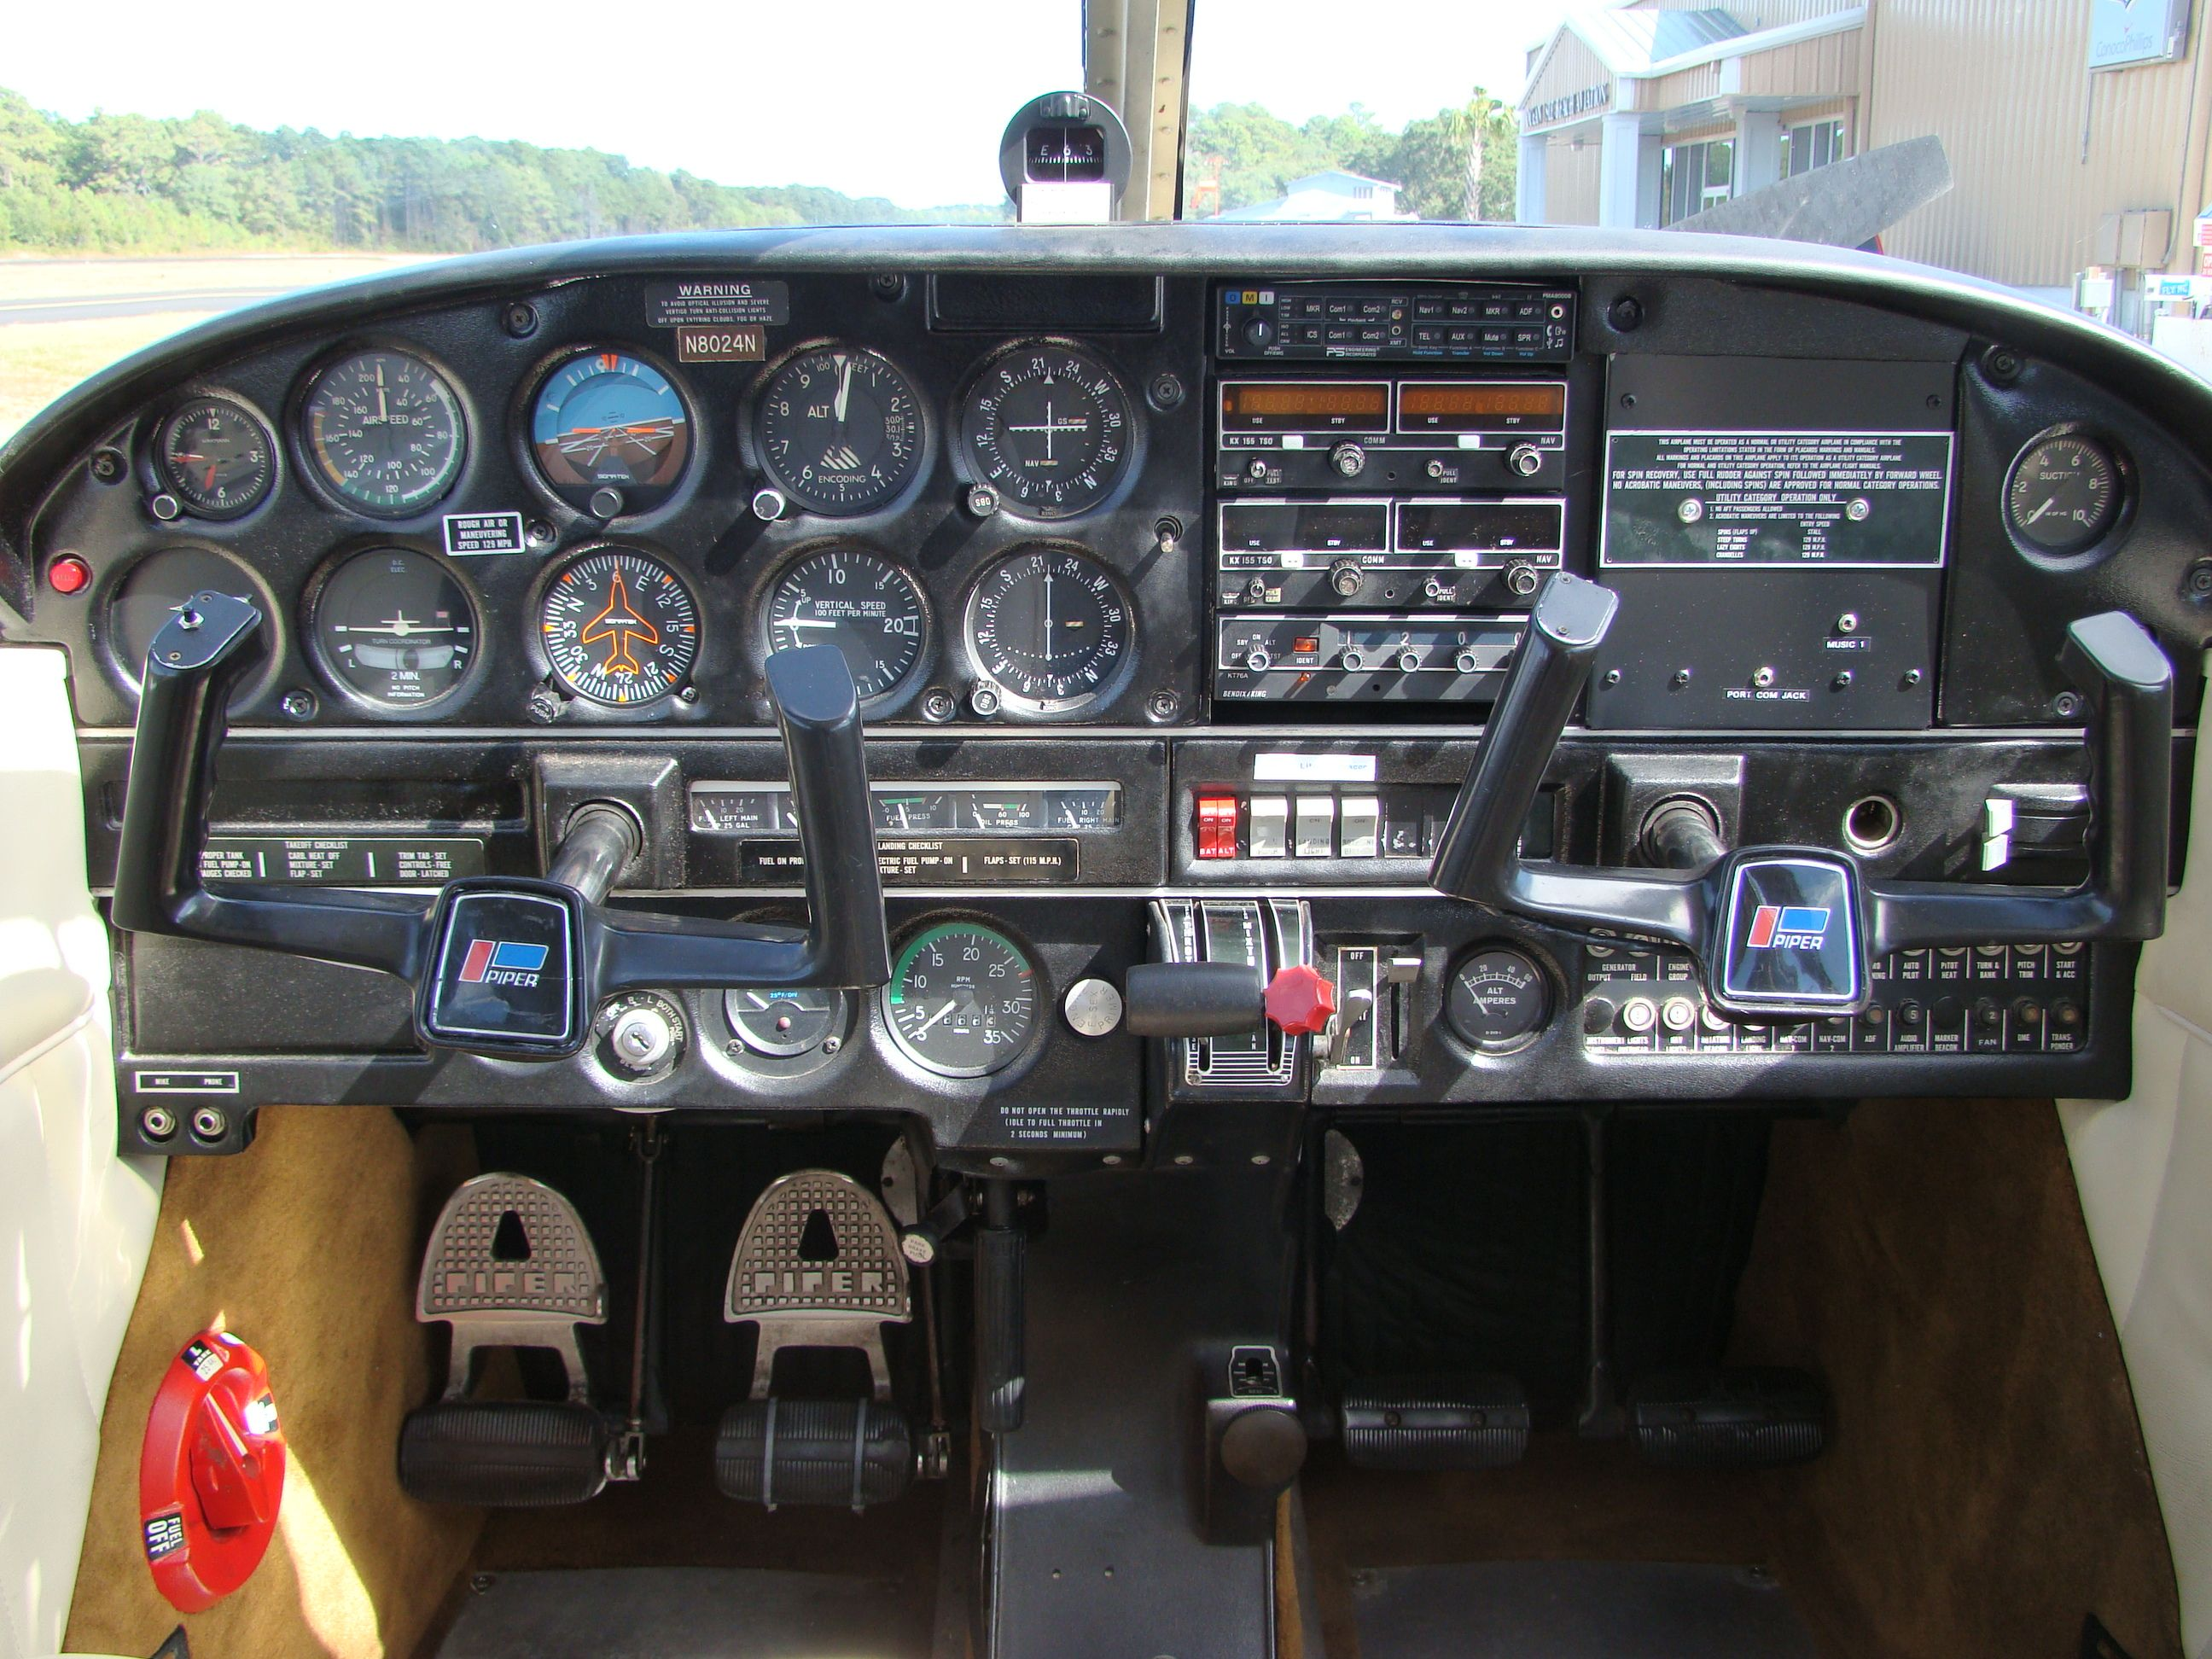 1967 Piper Cherokee 140 Instrument Panel with a Garmin 396